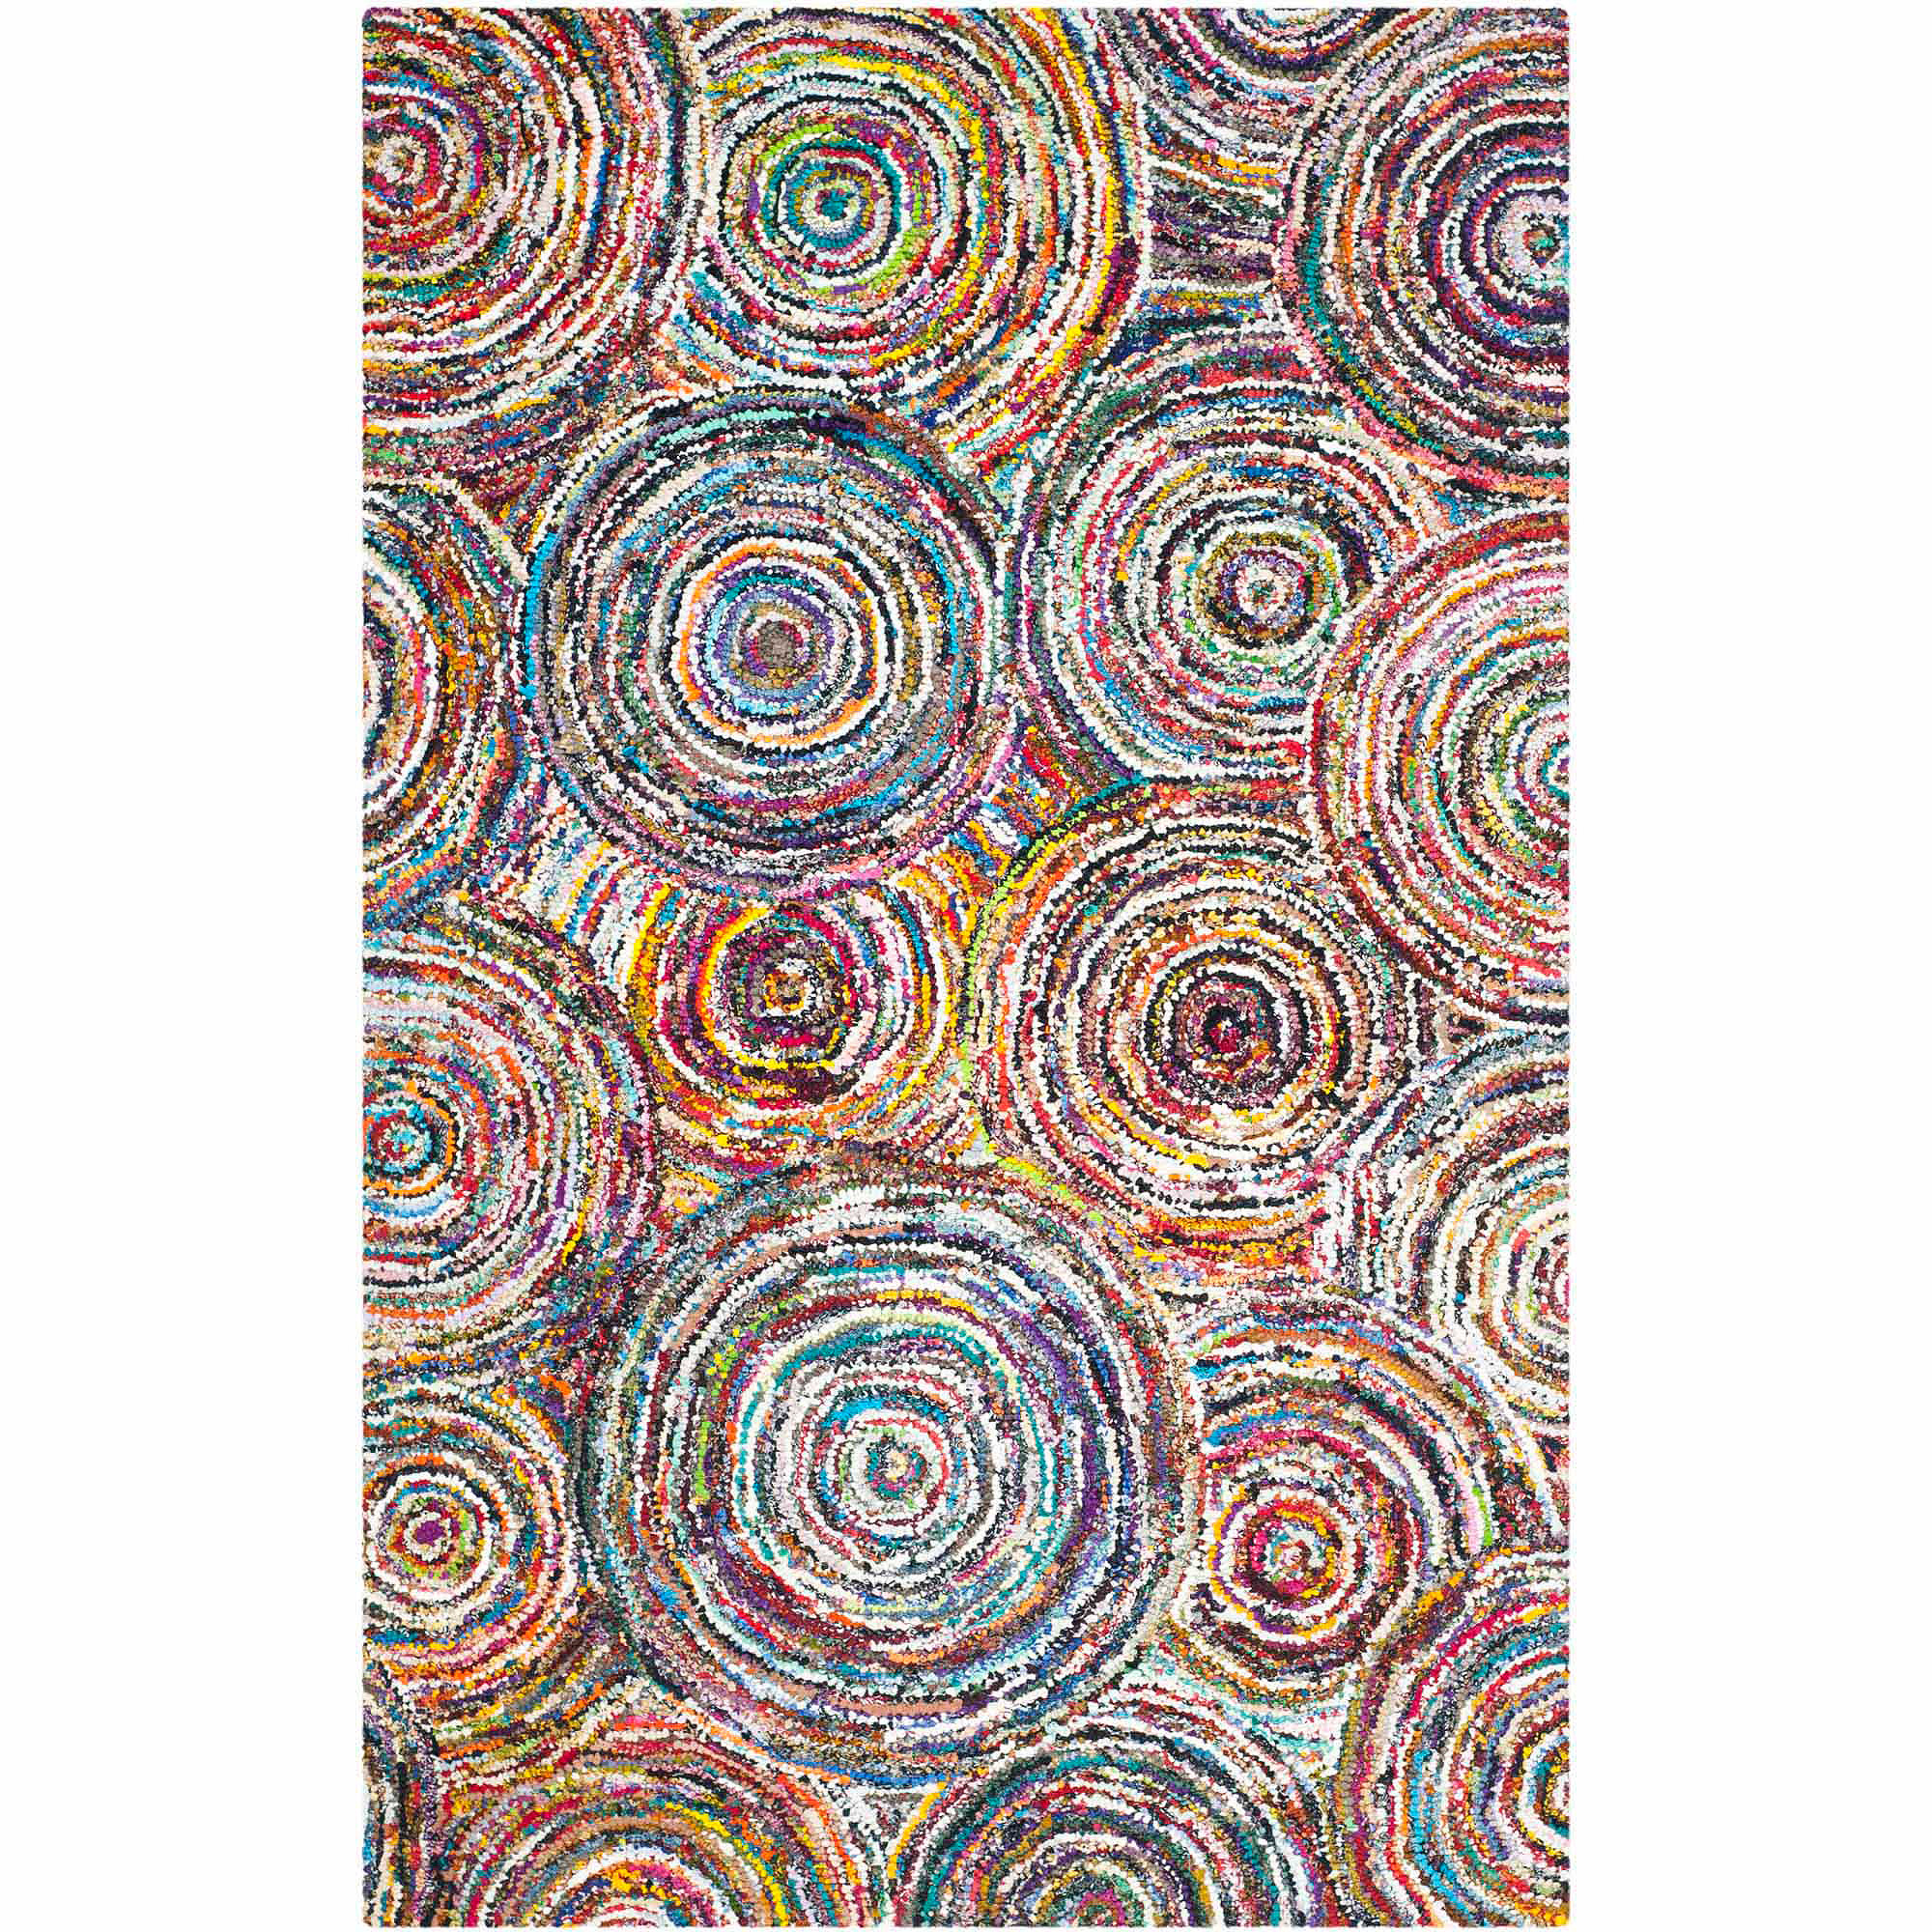 Safavieh Nantucket Lactrice Hand-Tufted Cotton Area Rug